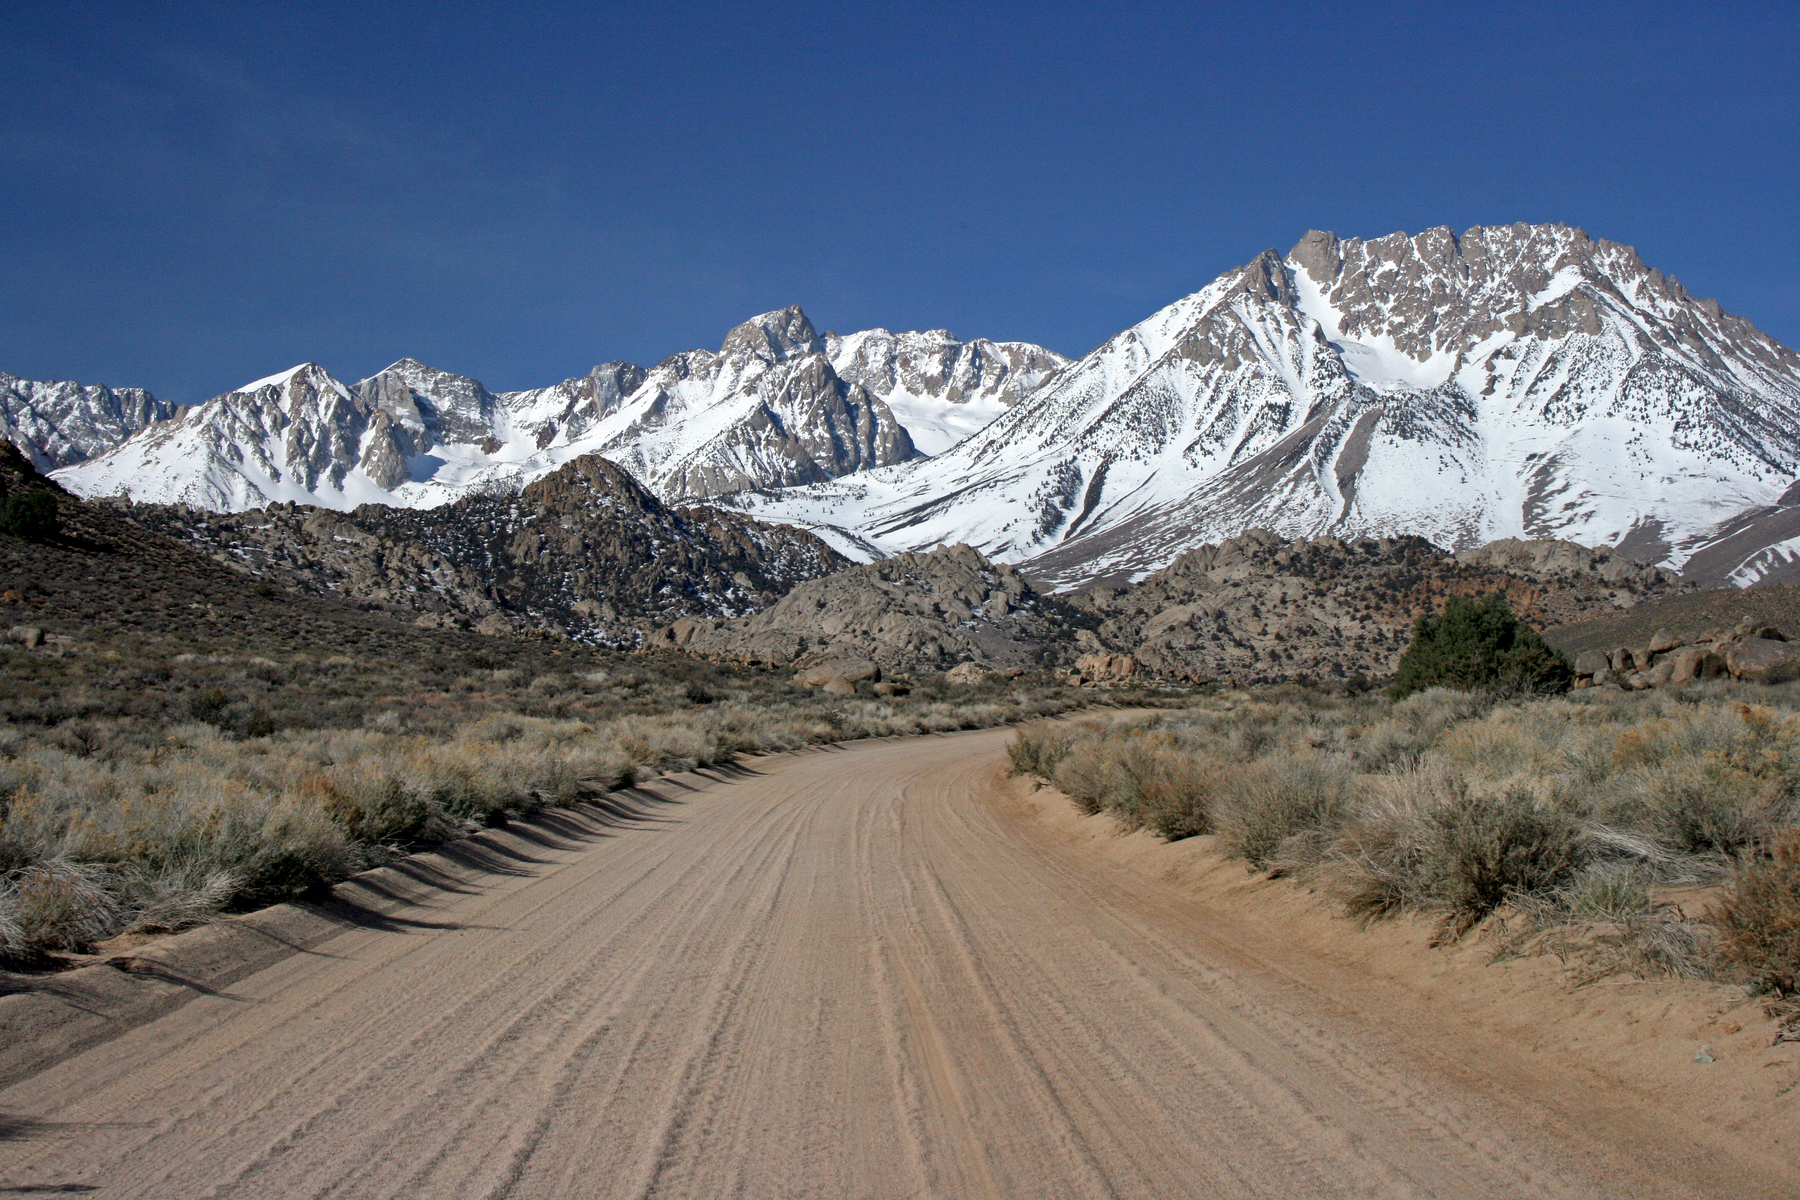 view of Basin Mountain and the Sierra, west of Bishop, California